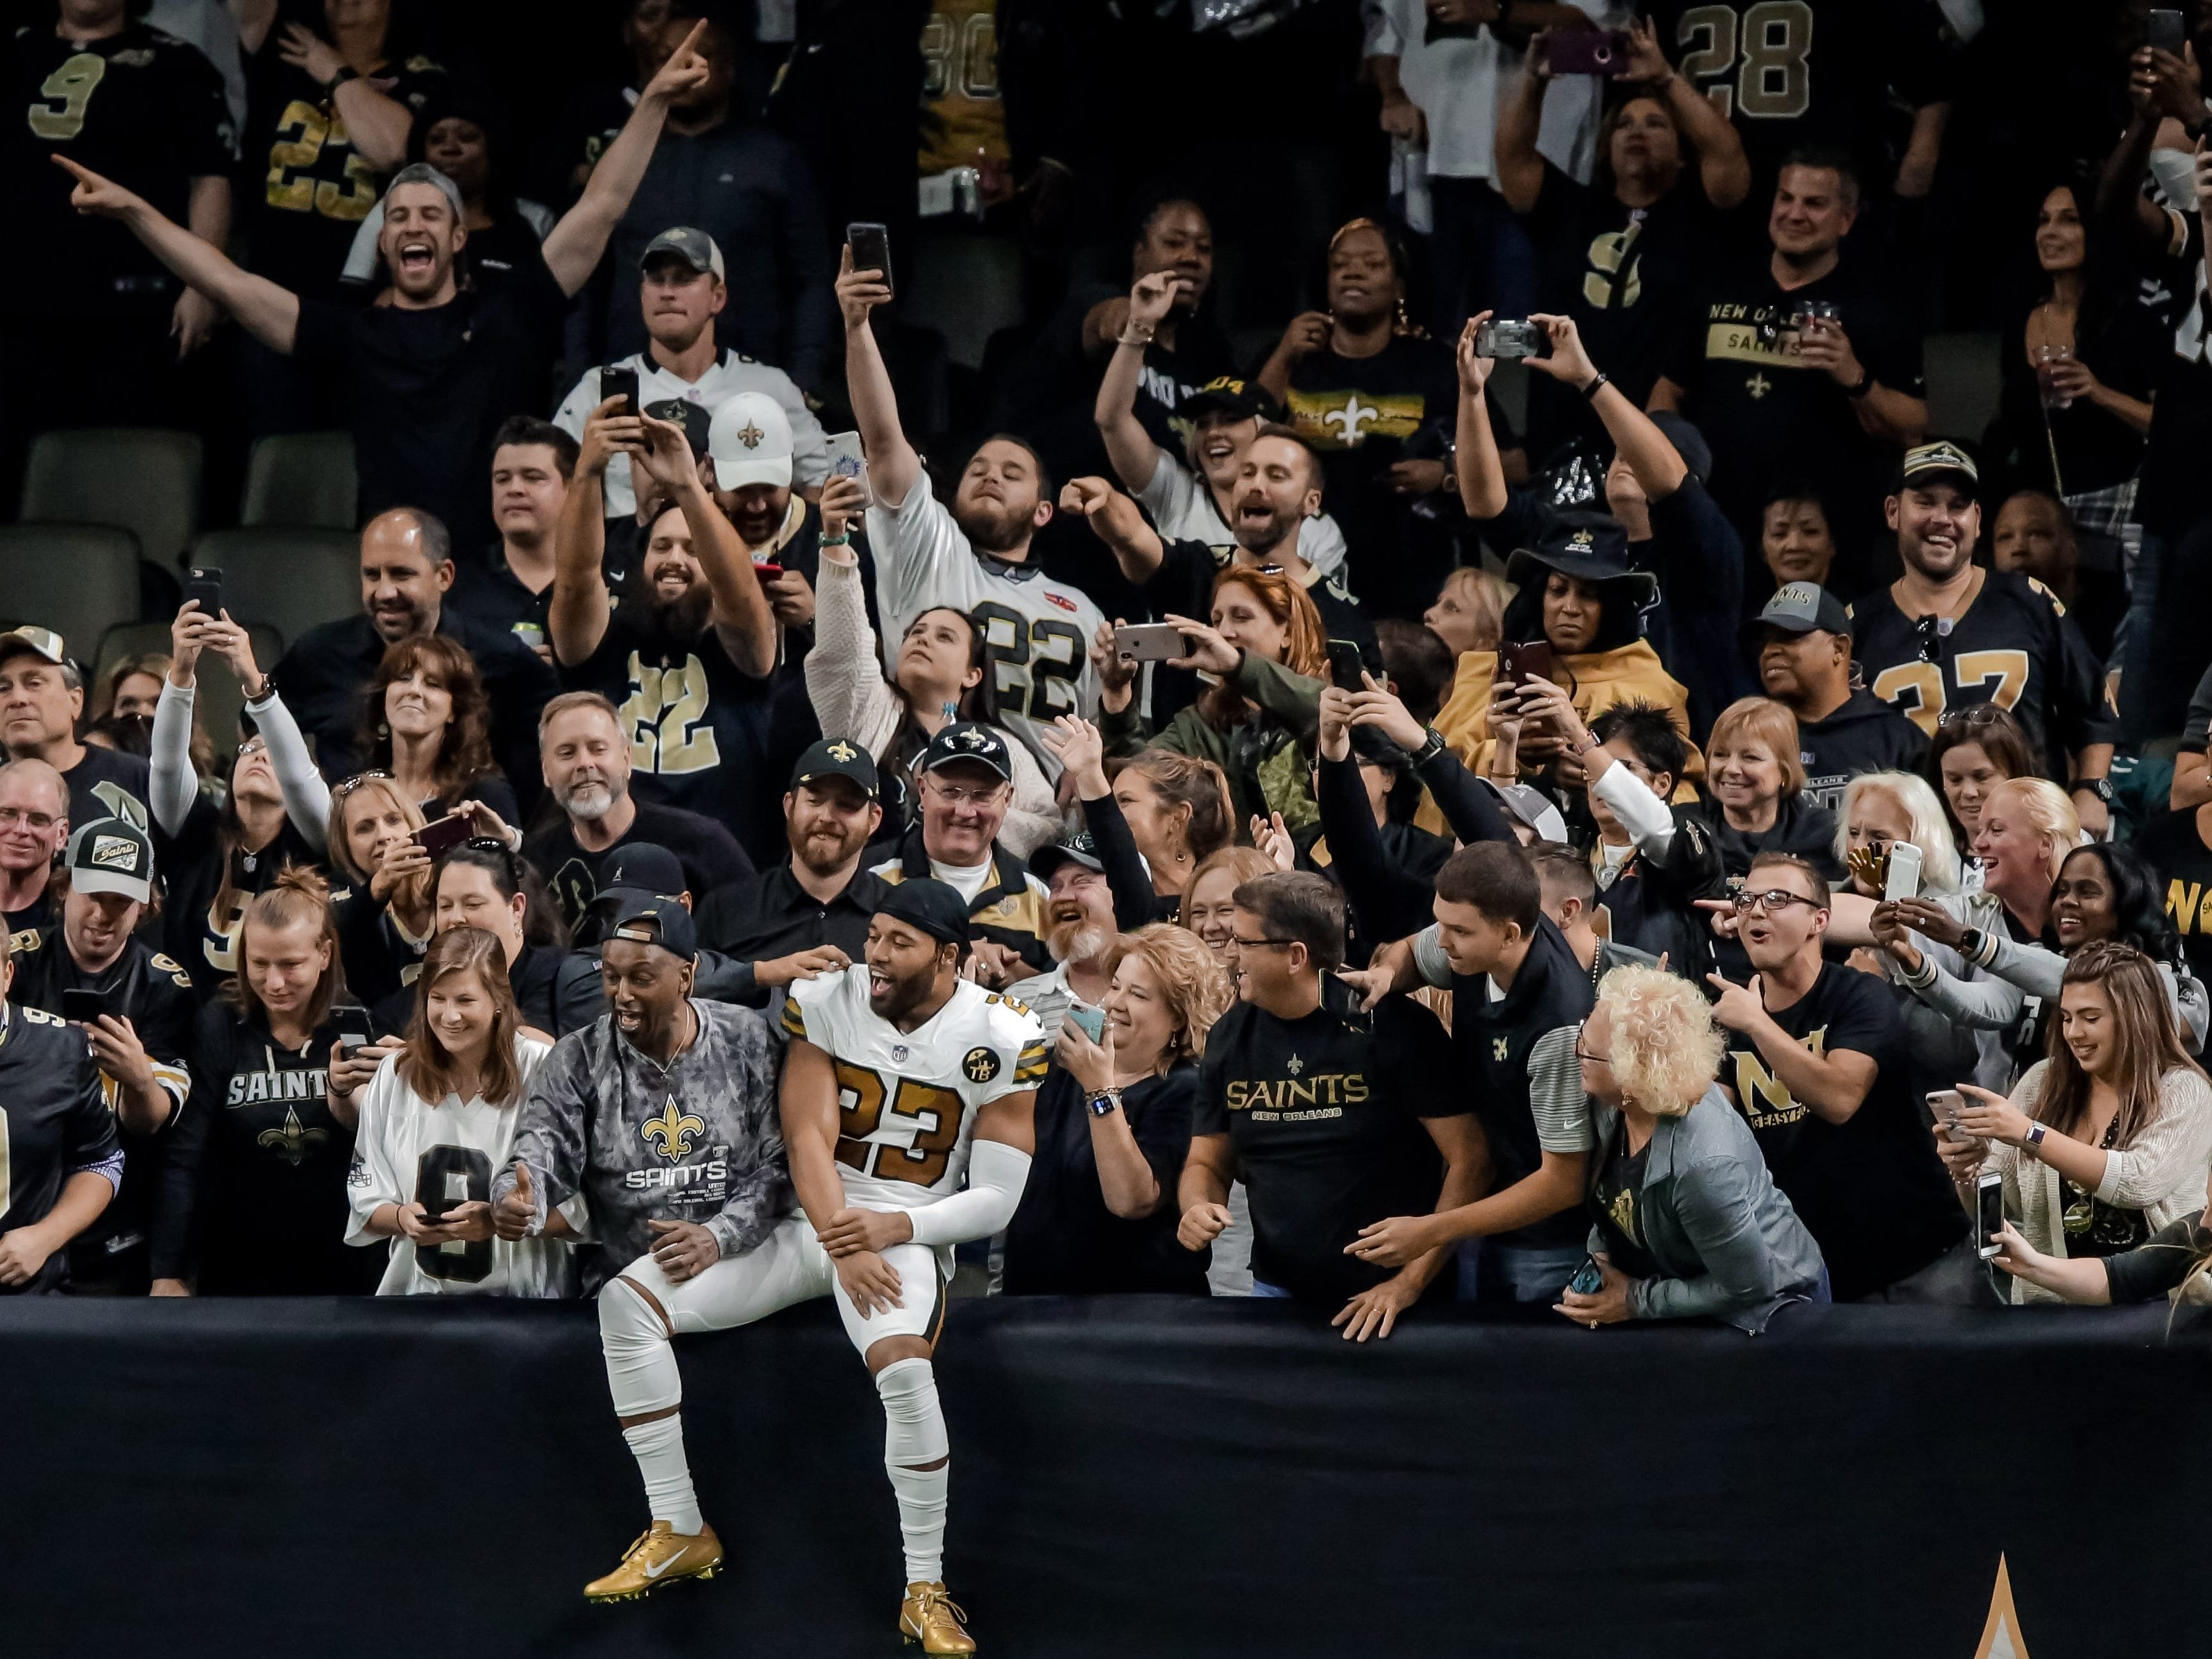 Week 11: New Orleans Saints cornerback Marshon Lattimore jumps into the stands to celebrate with fans after a Philadelphia Eagles turnover during the fourth quarter at the Mercedes-Benz Superdome. The Saints won the game, 48-7.